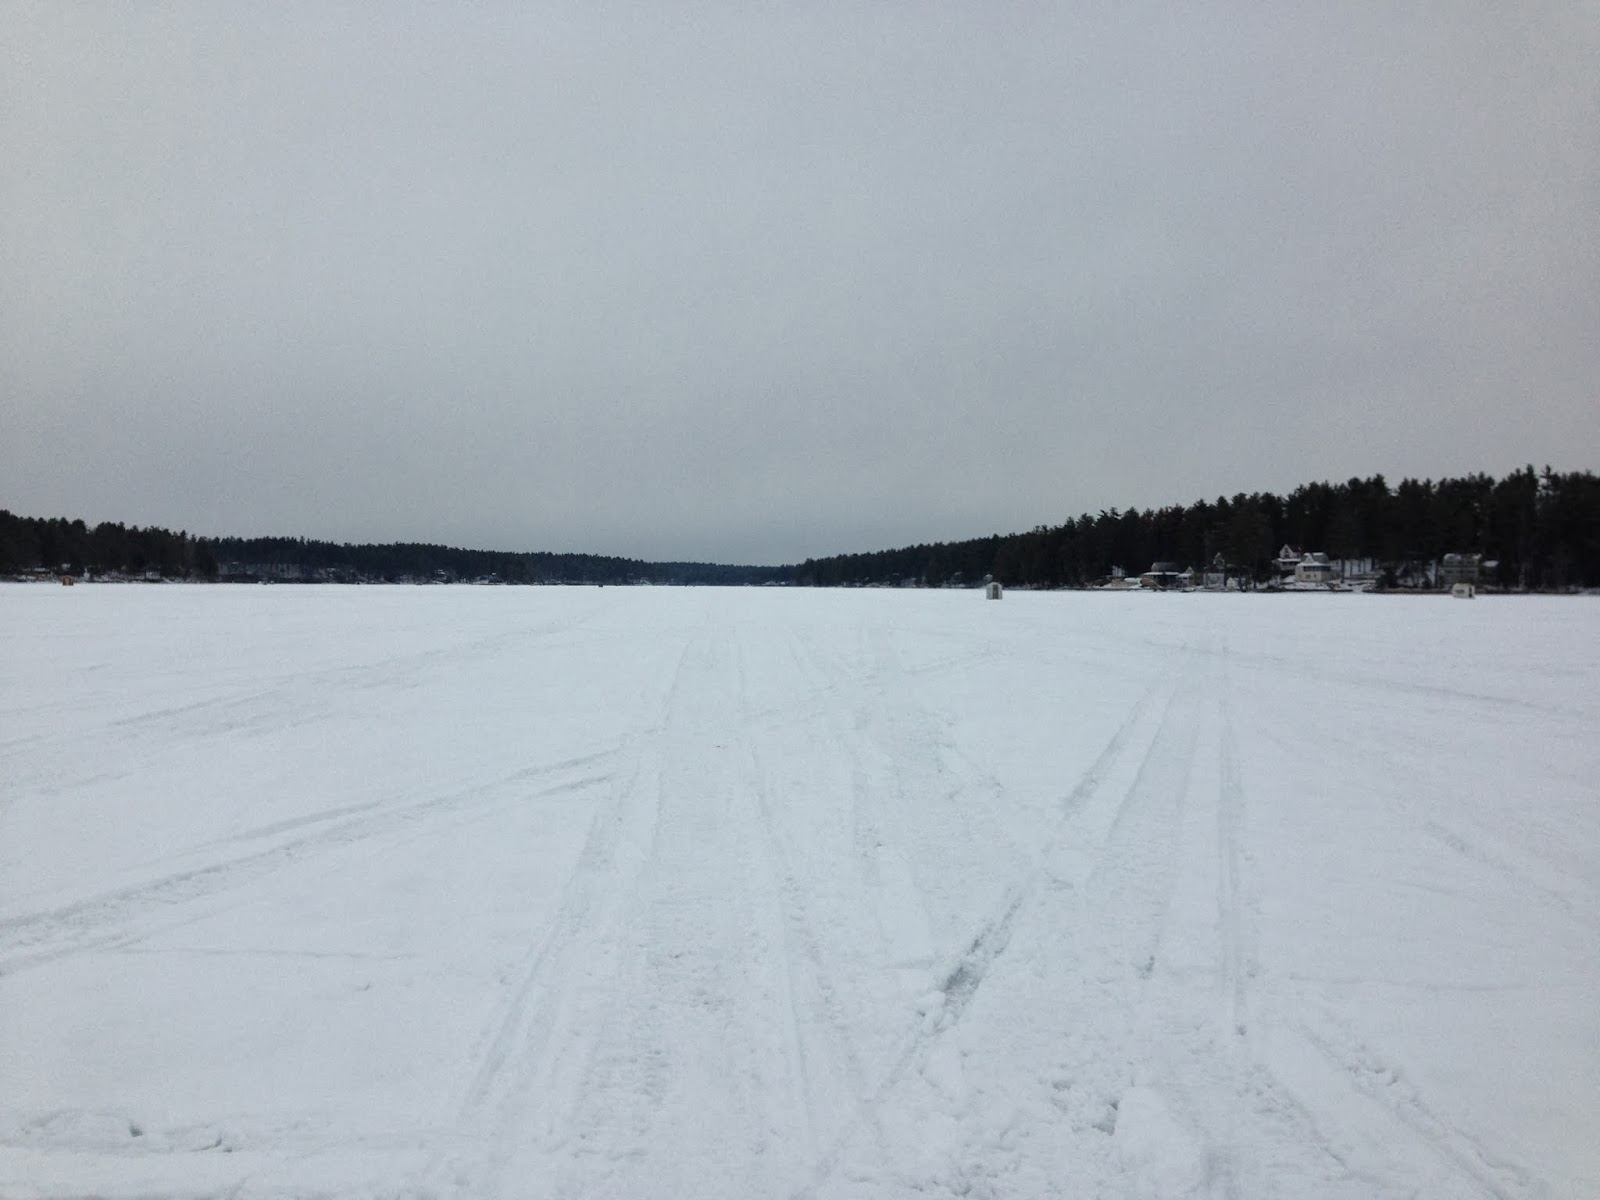 Paul 39 s hunting blog ice fishing mousam lake for Maine ice fishing derbies